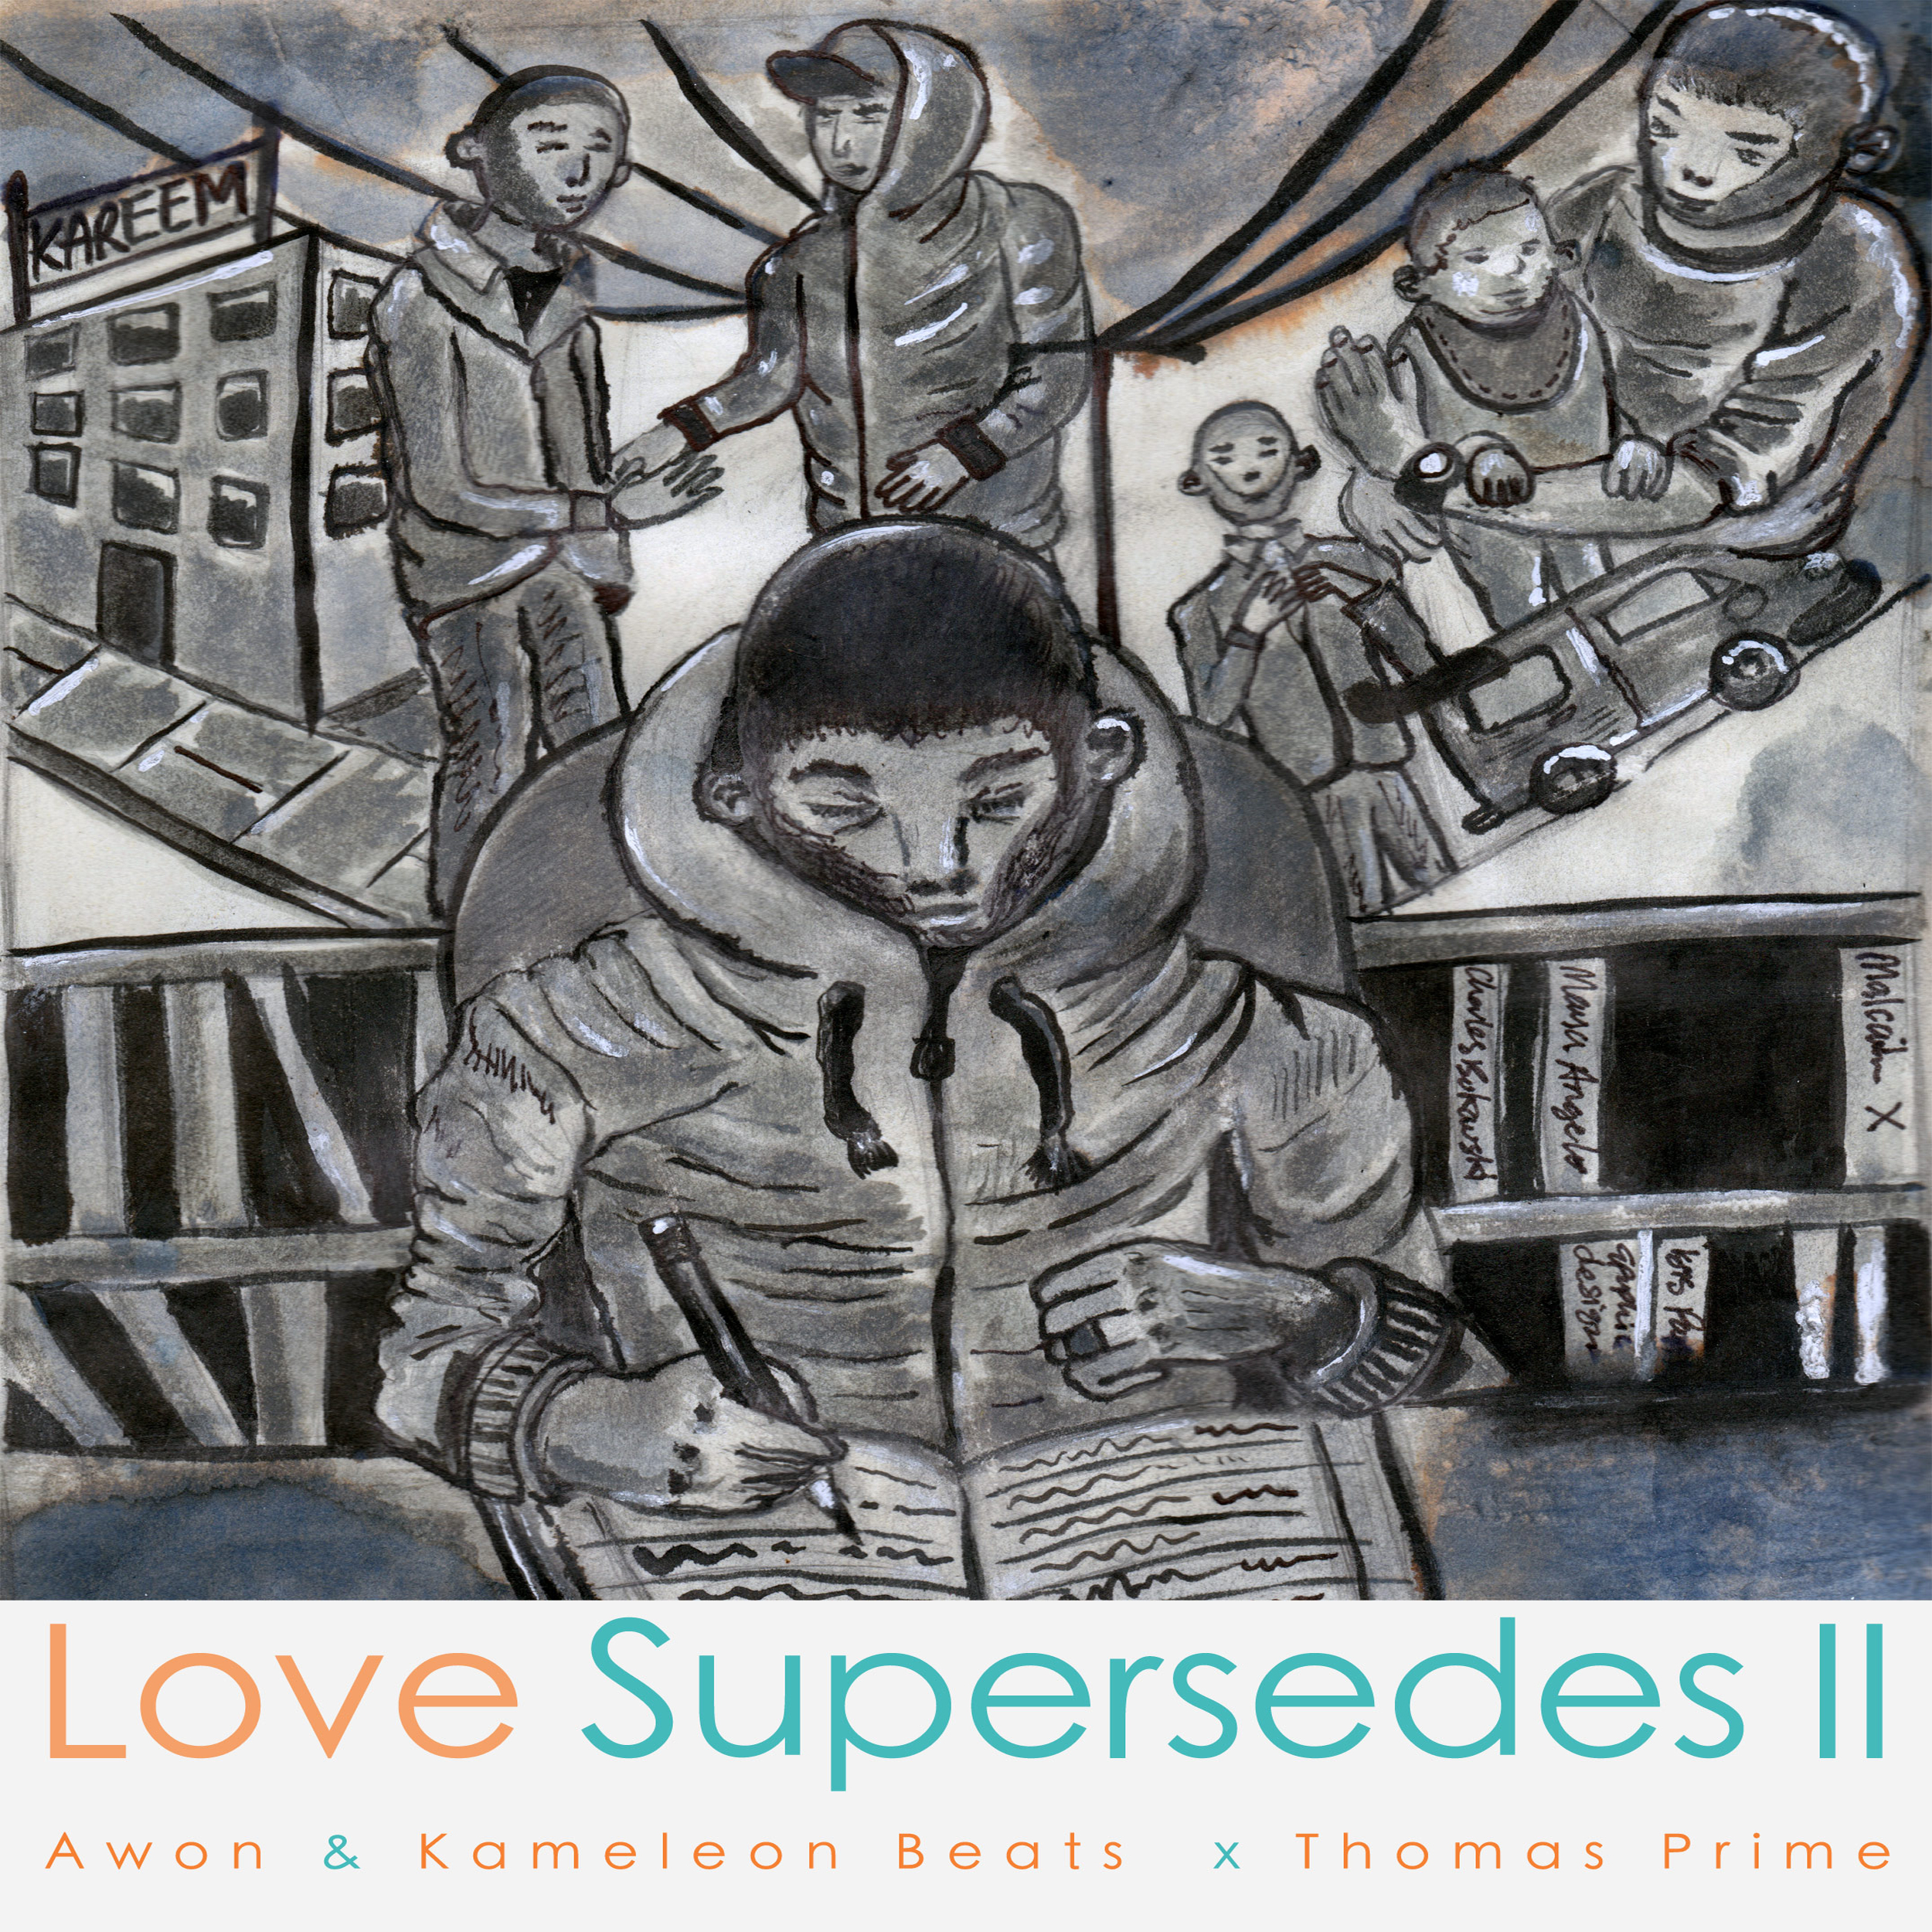 Free Download: Awon, Kameleon Beats & Thomas Prime – Love Supersedes II (2012)